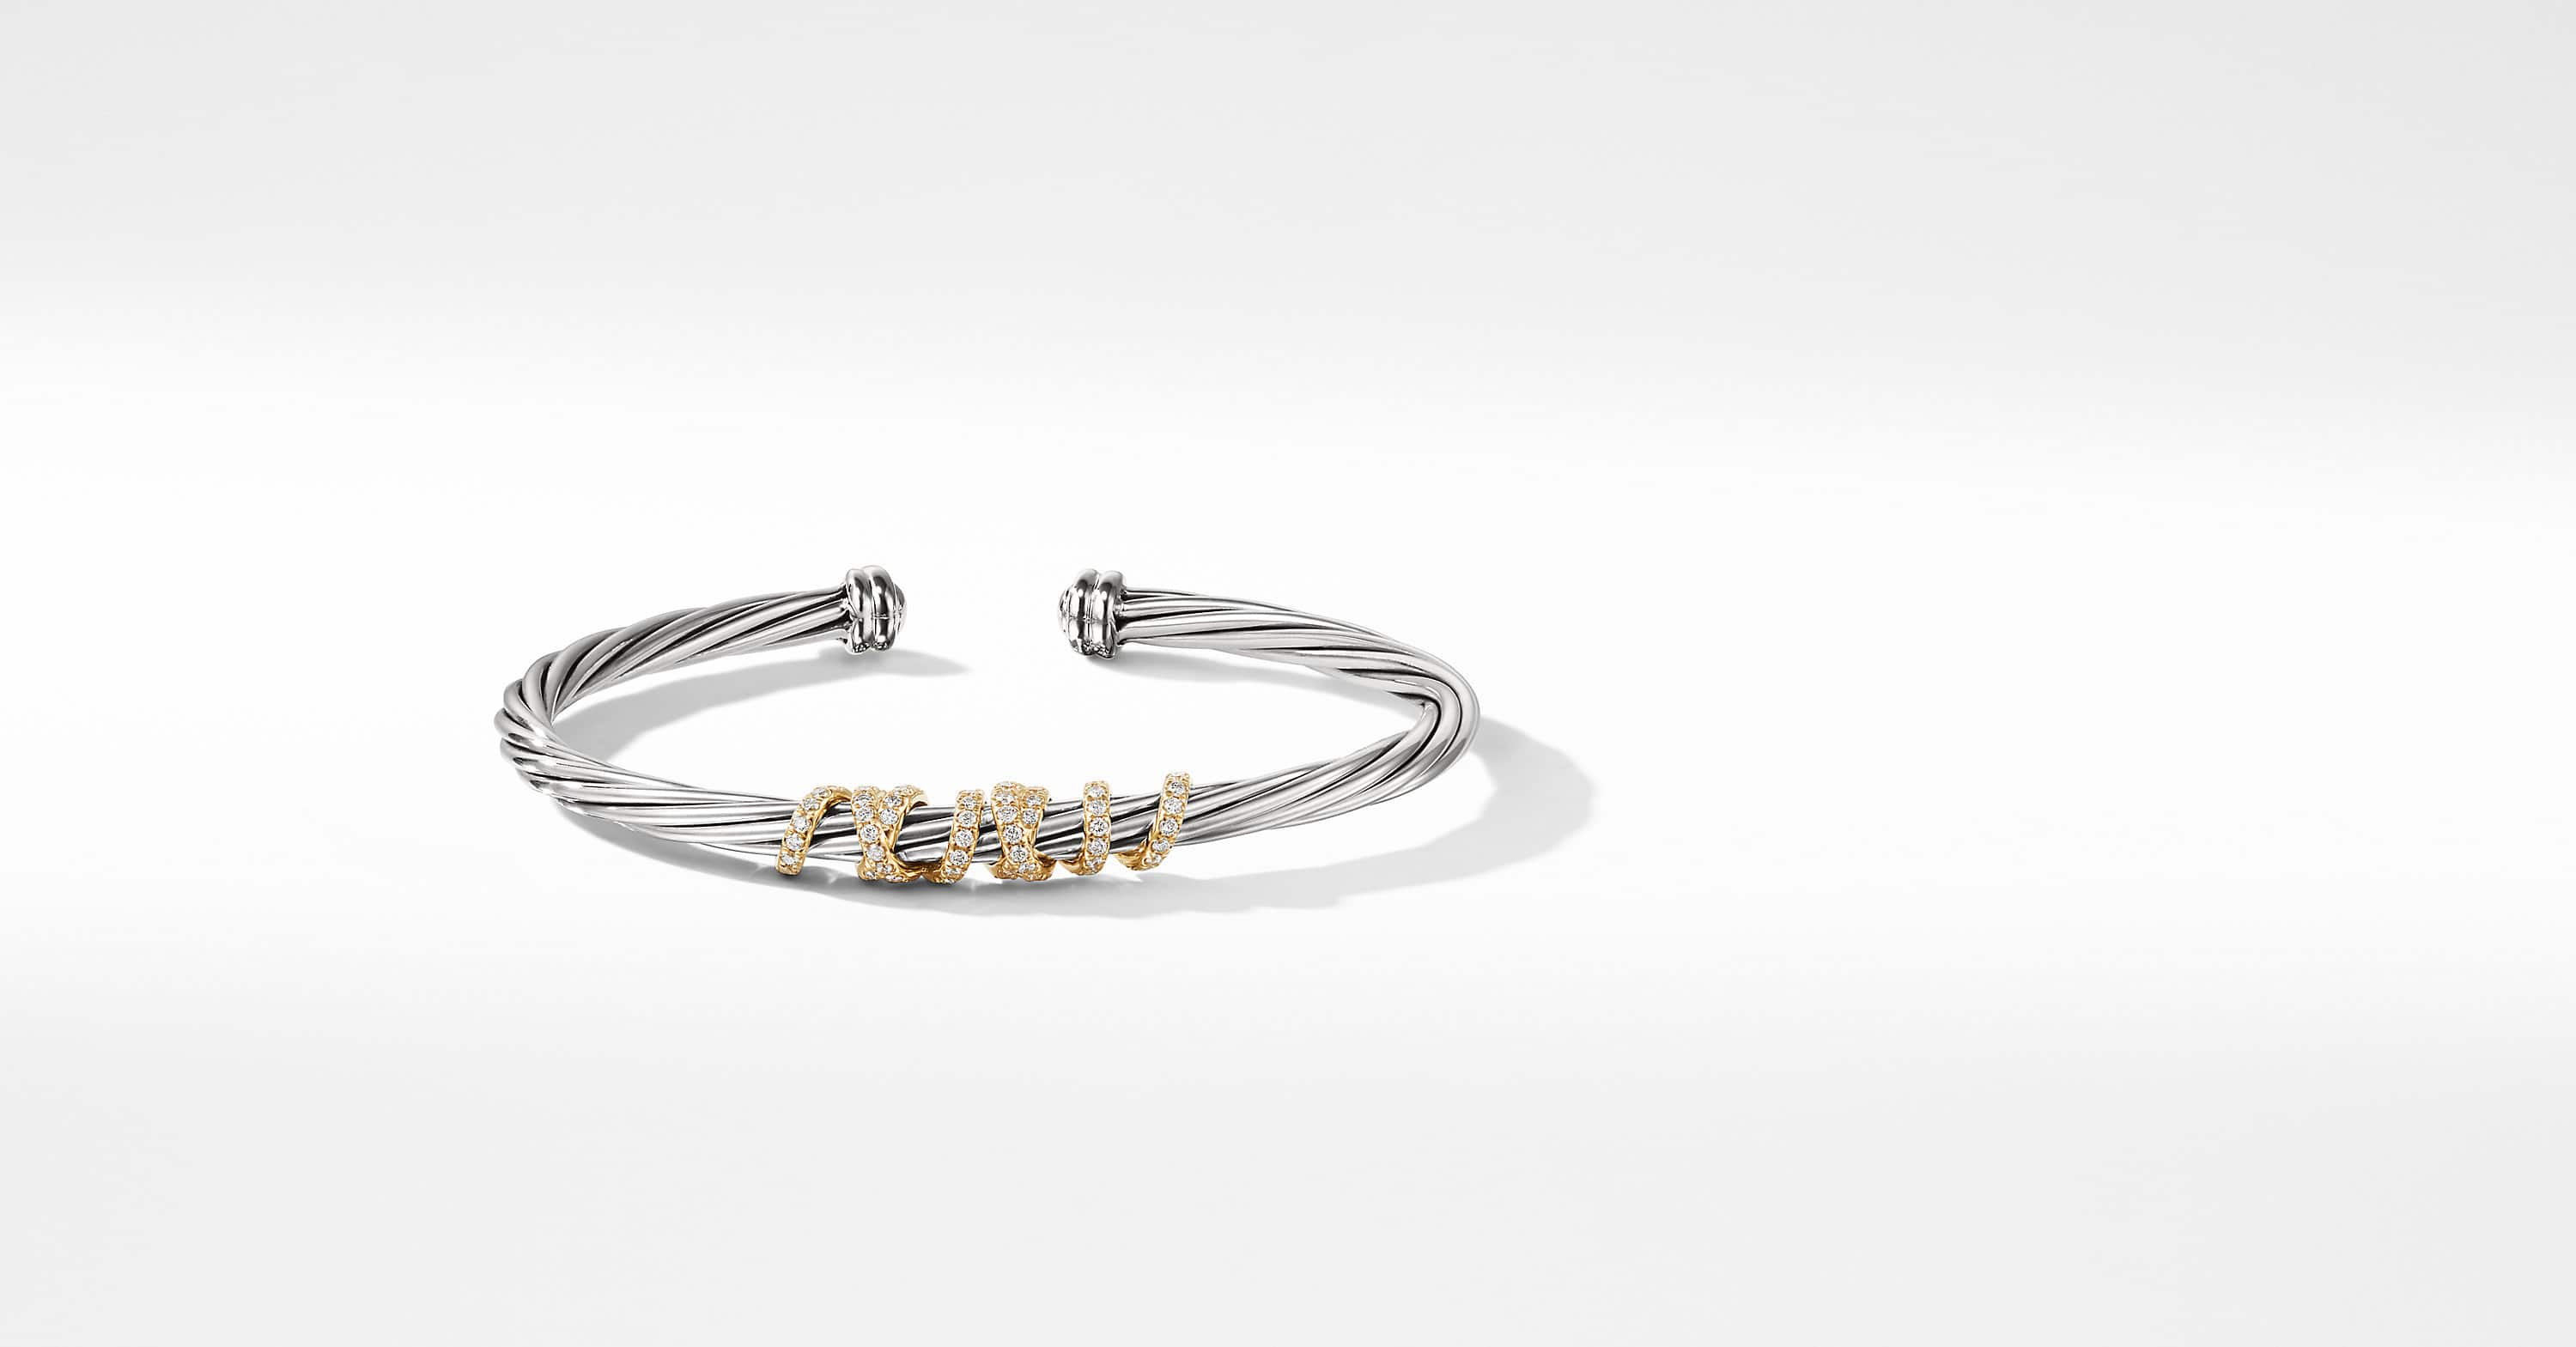 Bracelet Helena Center Station avec diamants et or 18K, 4 mm